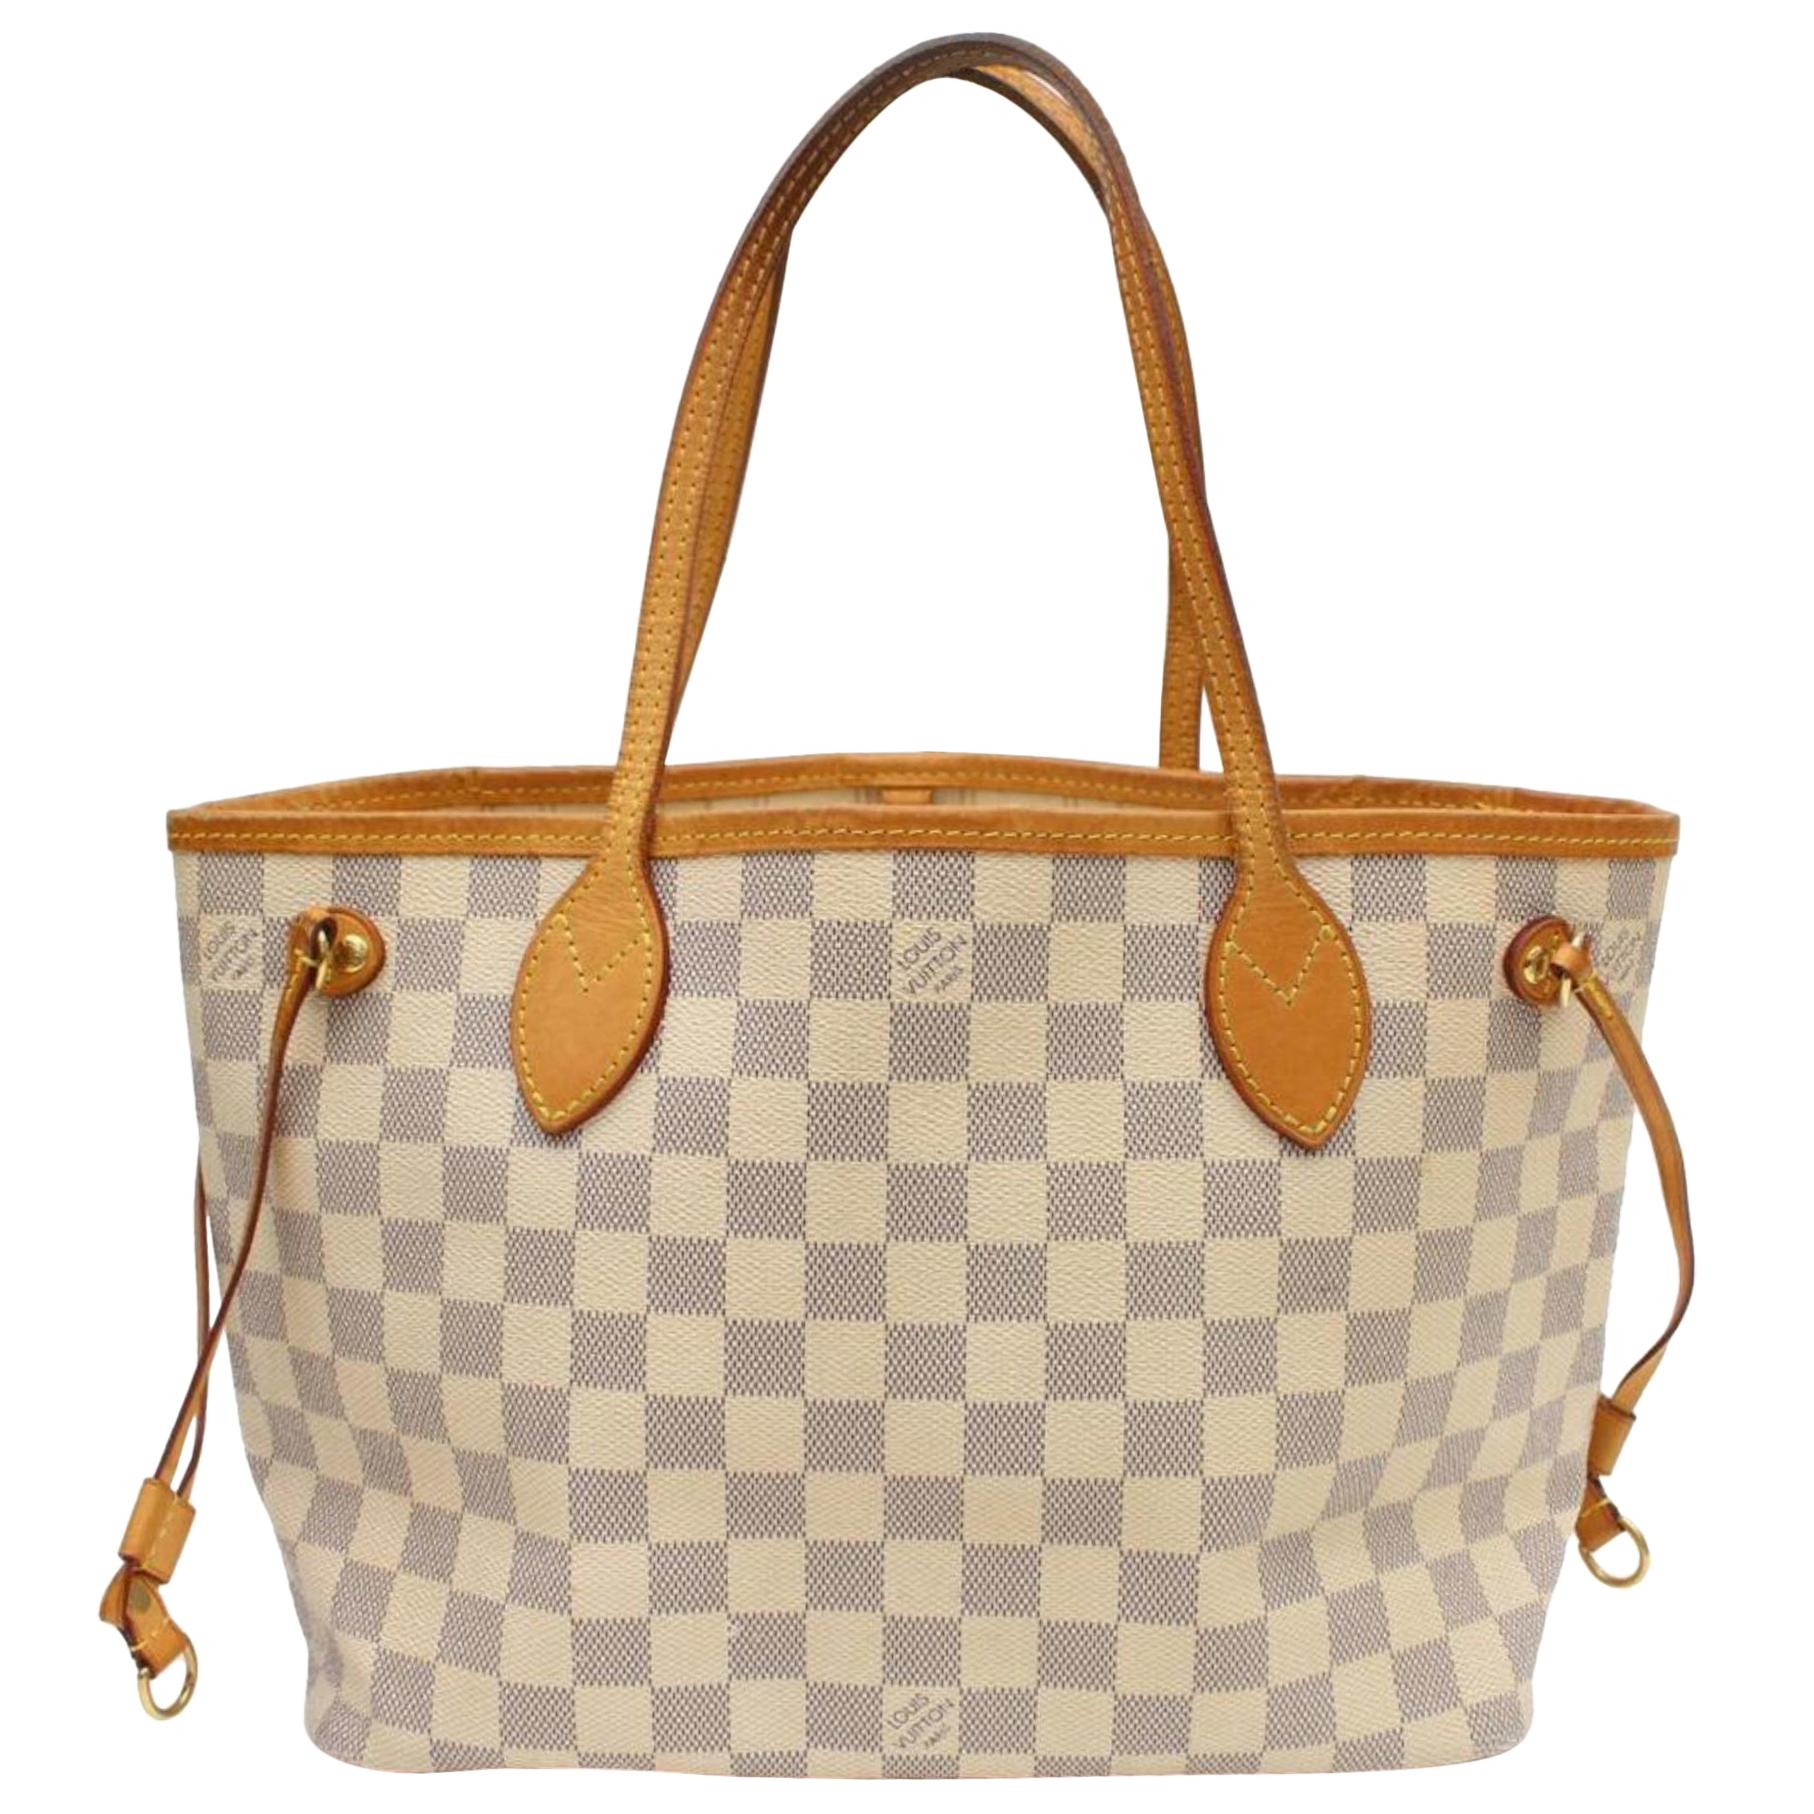 e373a0fc32f Louis Vuitton Neverfull Damier Azur Pm 869539 White Coated Canvas Tote at  1stdibs